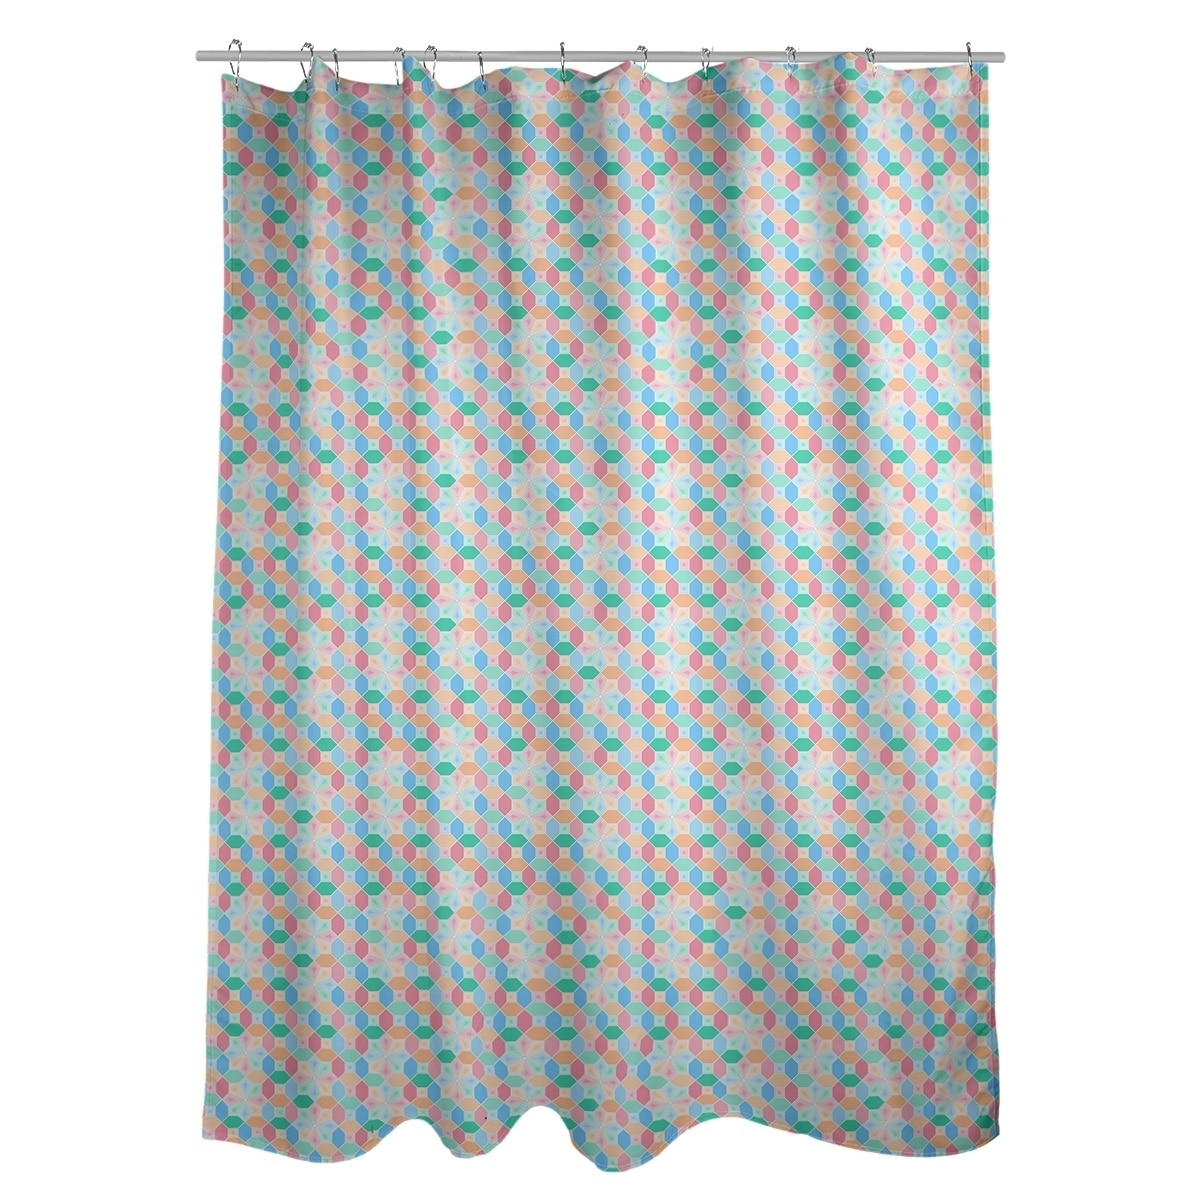 Glass Shower Curtains Katelyn Elizabeth Multicolor Stained Glass Pattern Shower Curtain